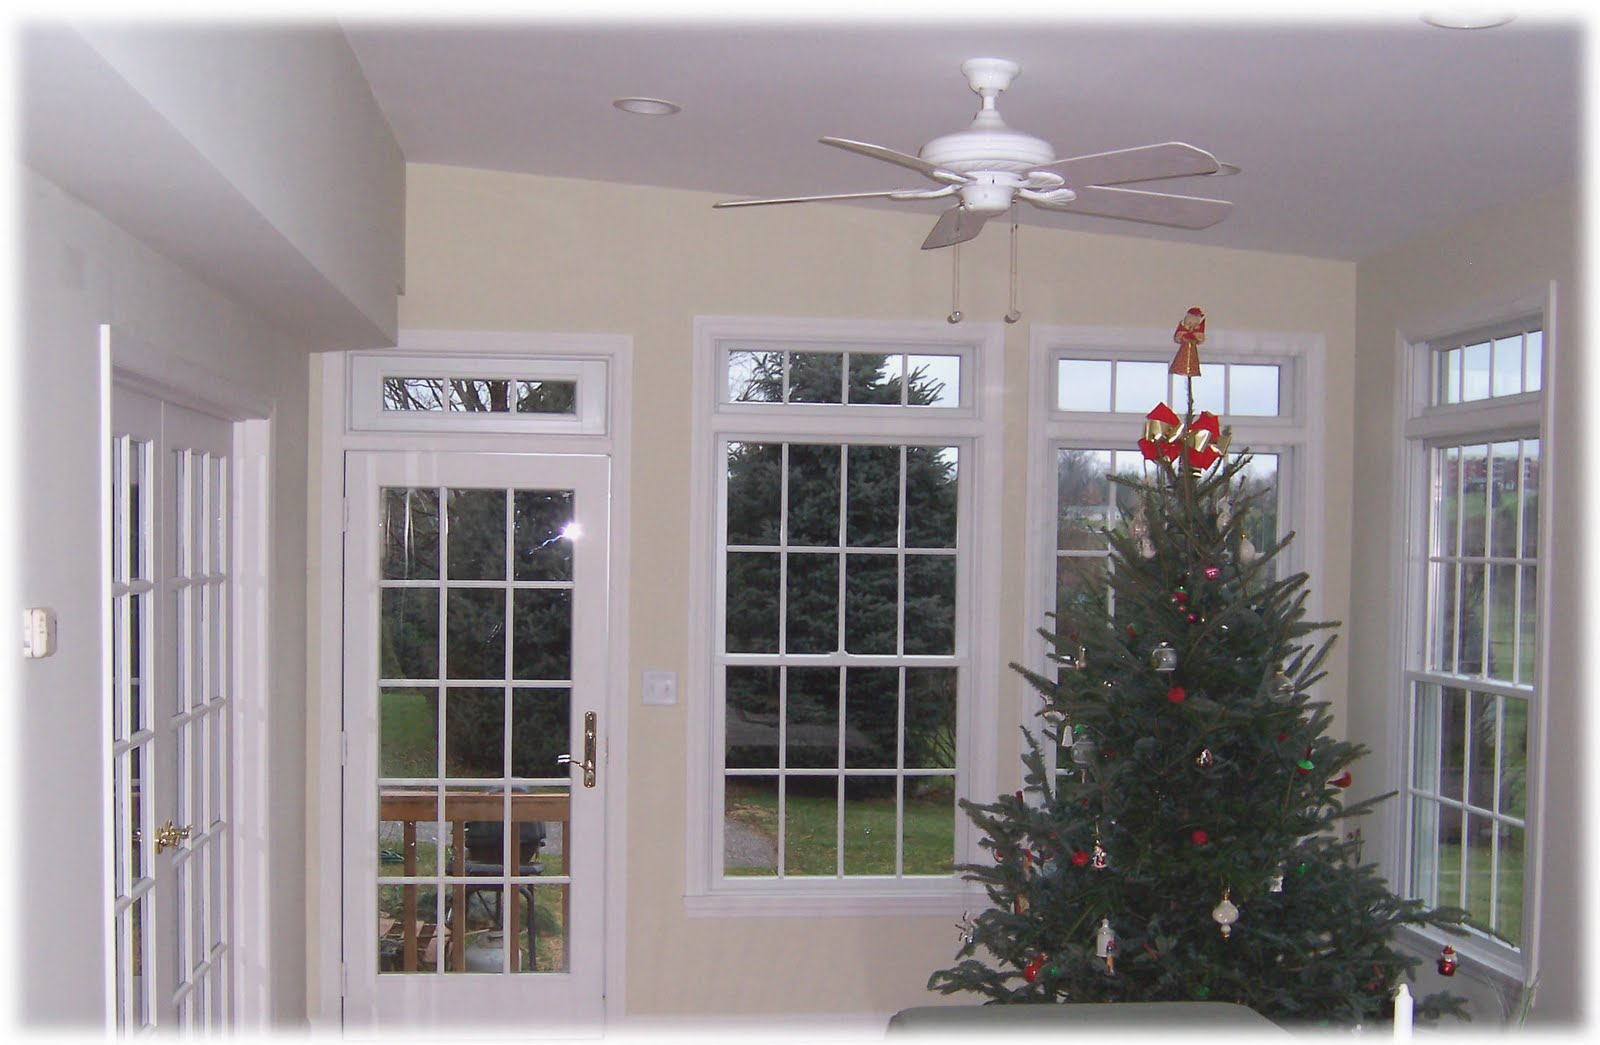 All about window window designs modern or old fashioned for Modern window house